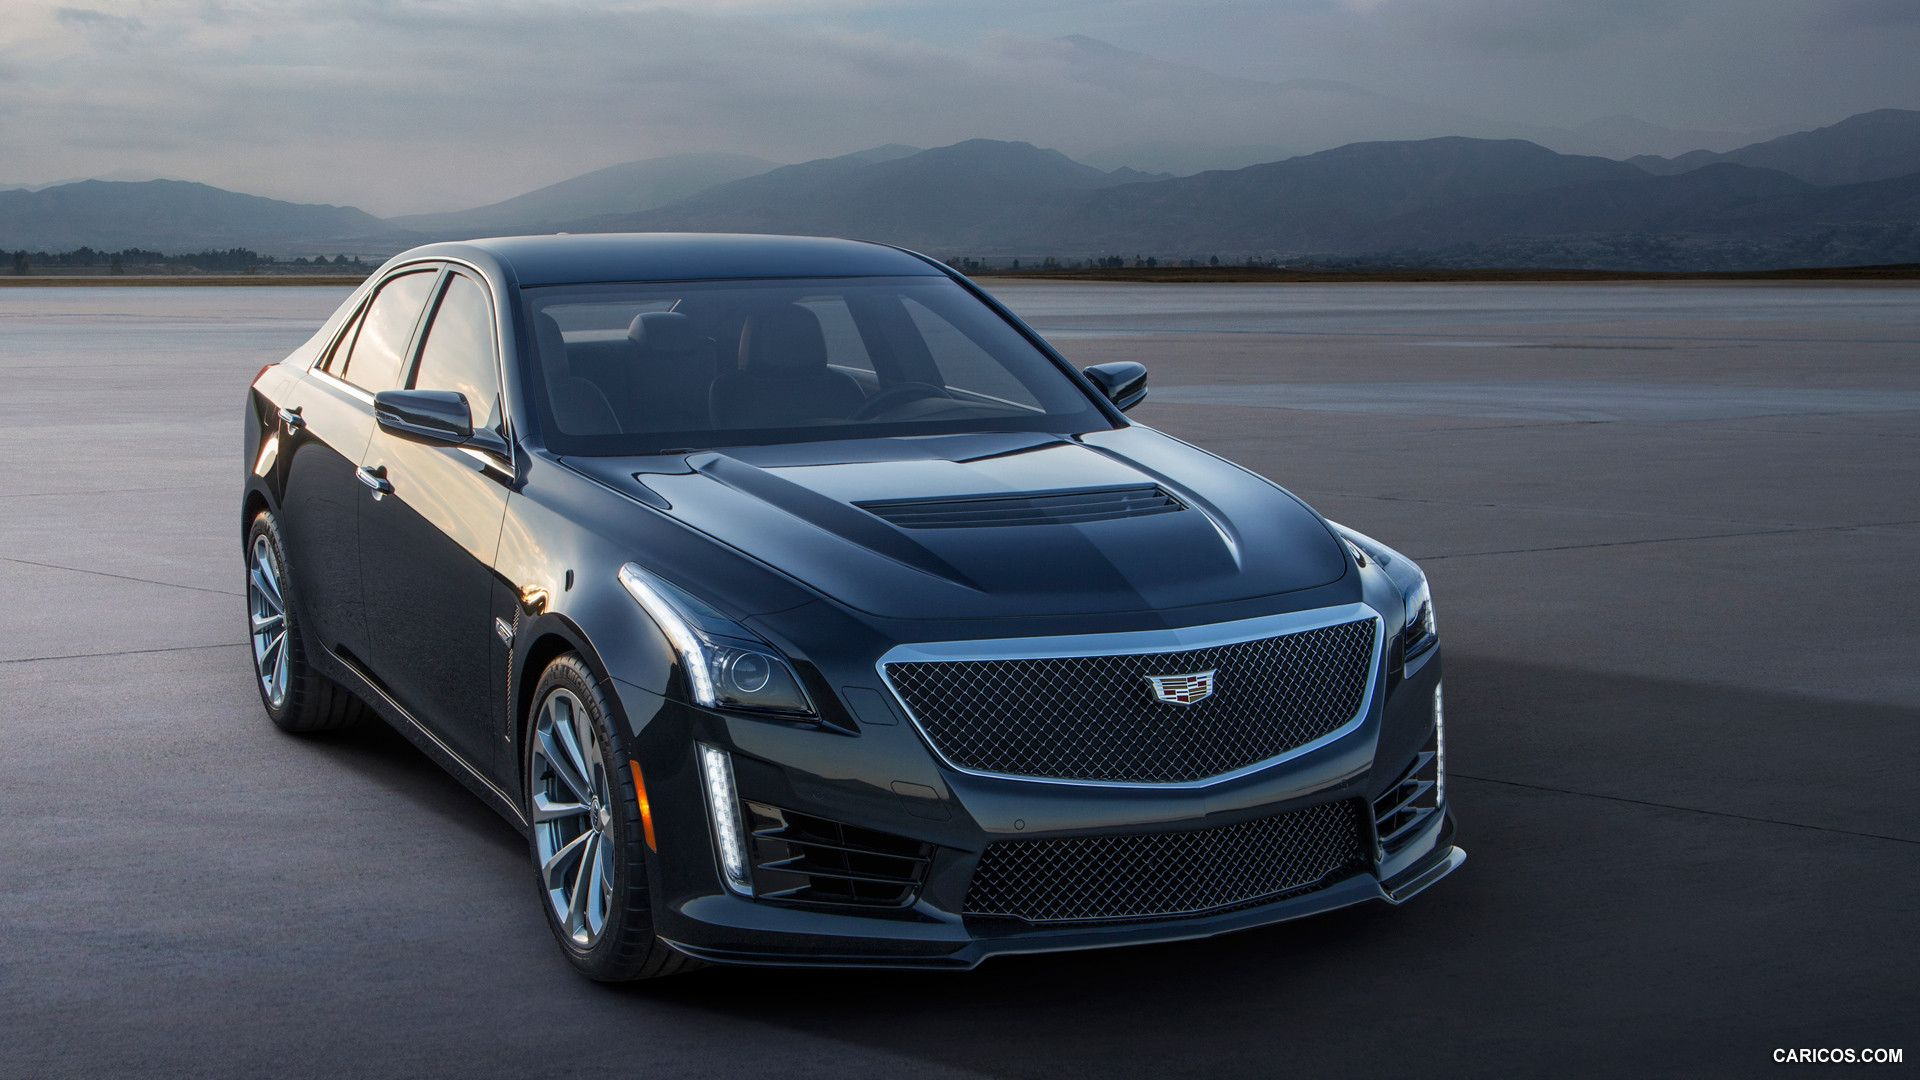 Cadillac Cts Wallpapers Top Free Cadillac Cts Backgrounds Wallpaperaccess